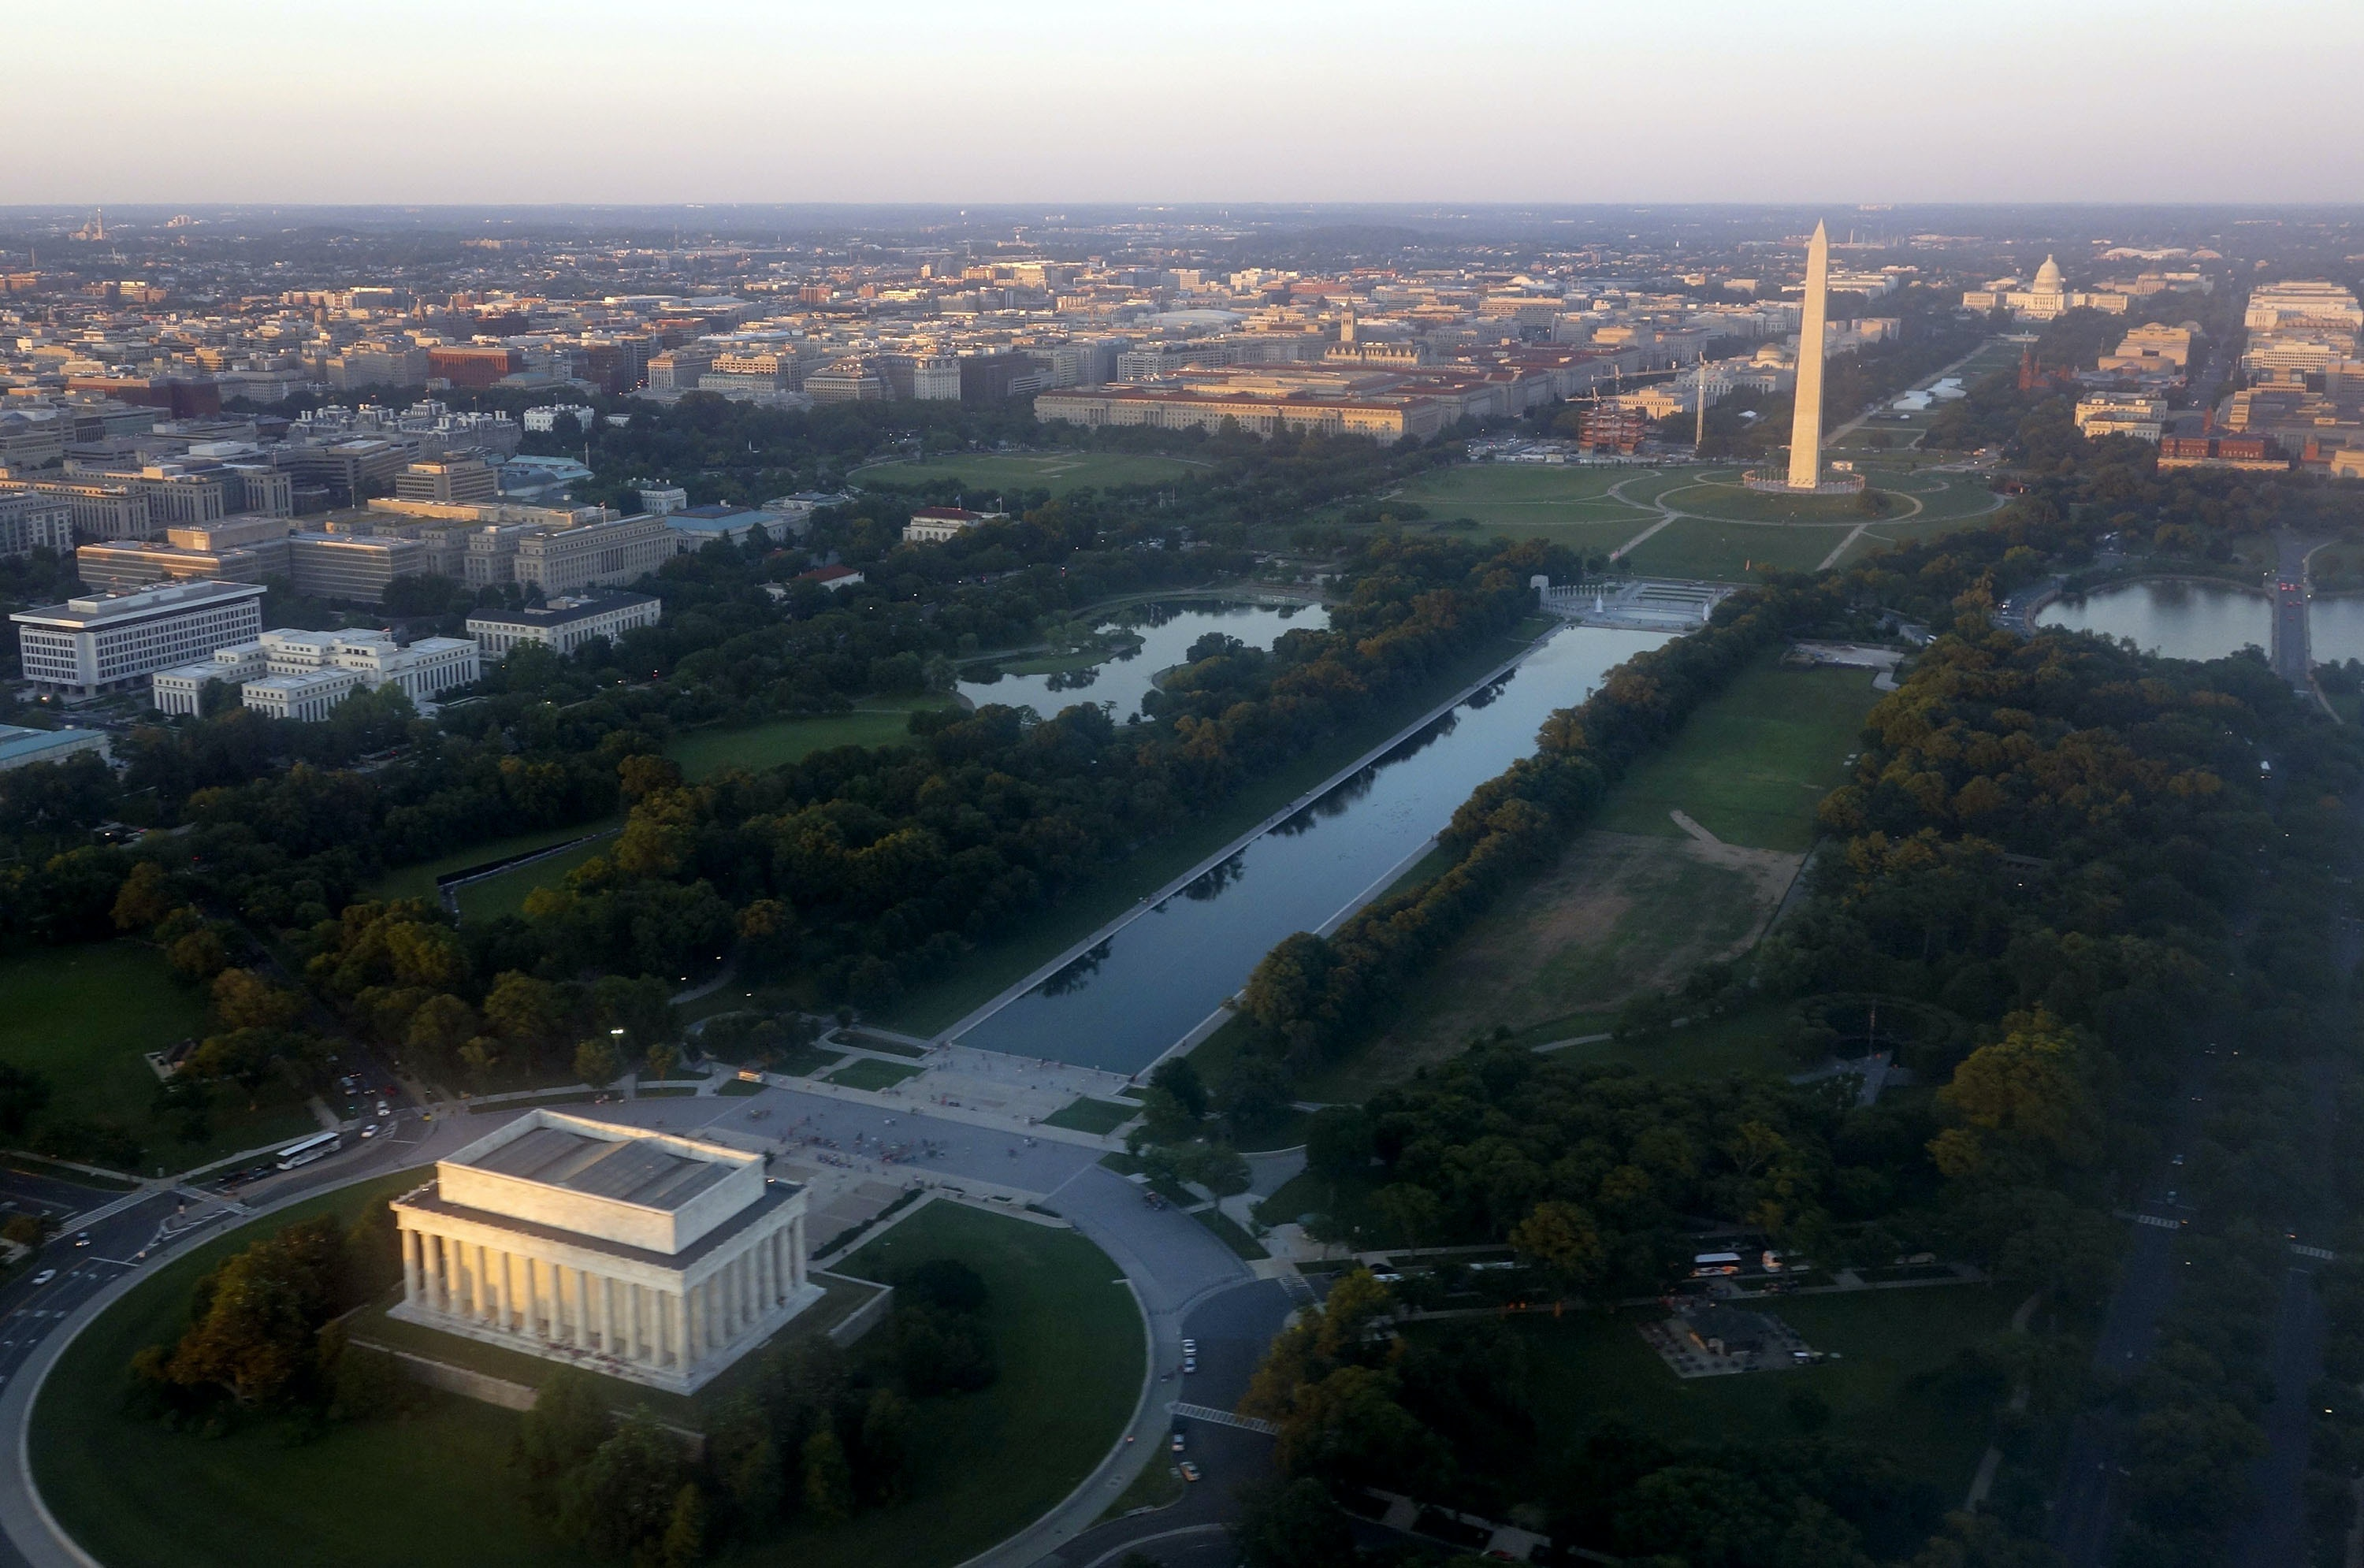 The skyline of Washington, DC, including the Lincoln Memorial, Washington Monument, US Capitol and National Mall, is seen from the air at sunset in this photograph taken on June 15, 2014. AFP PHOTO / Saul LOEB        (Photo credit should read SAUL LOEB/AFP/Getty Images)